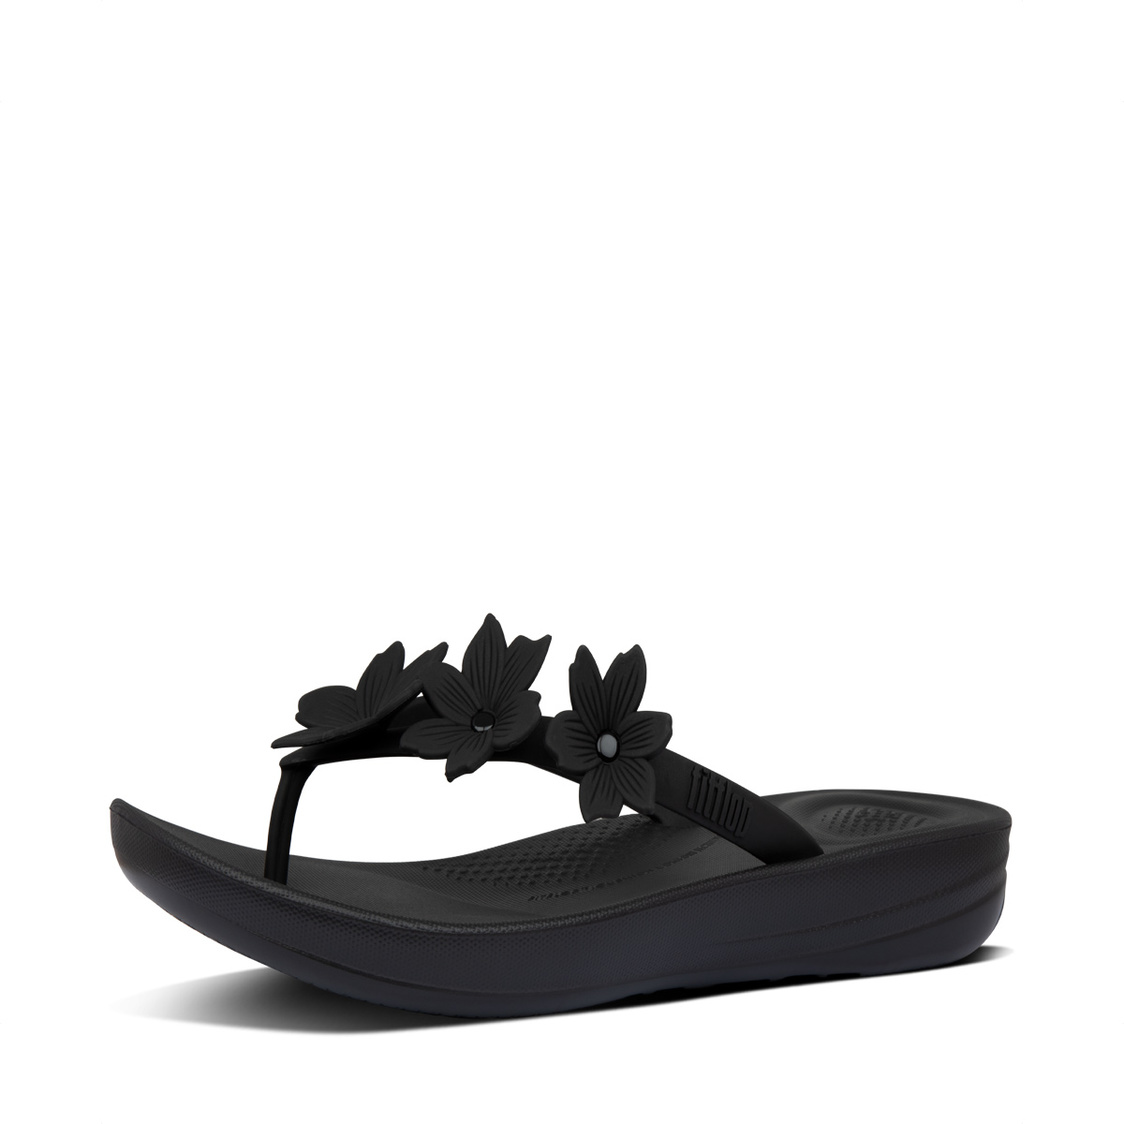 Fitflop iQushion Floral Flip-Flops All Black